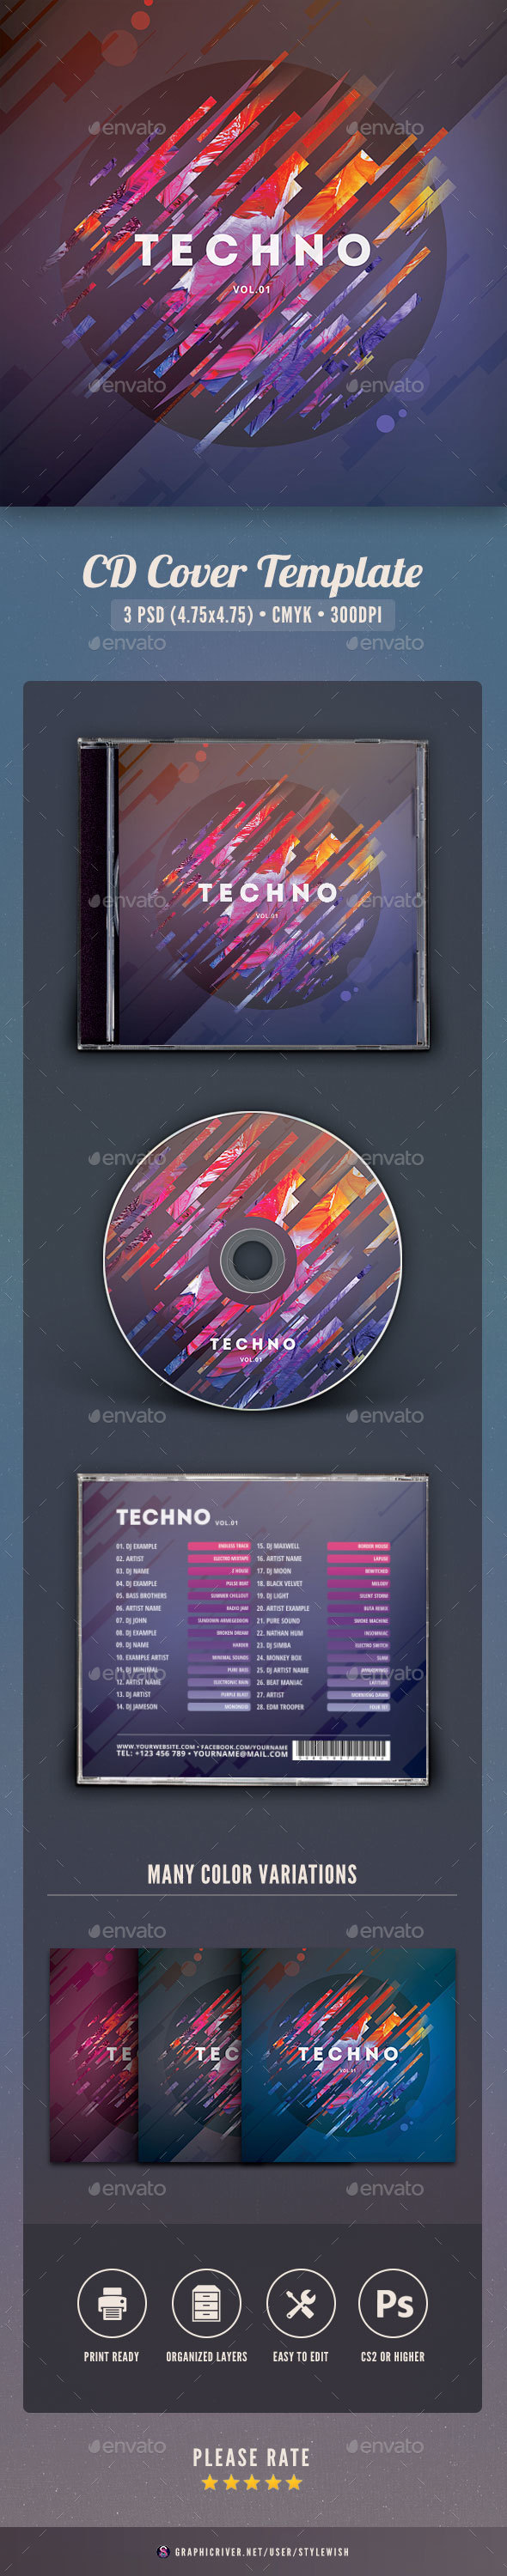 GraphicRiver Techno CD Cover Artwork 20985786